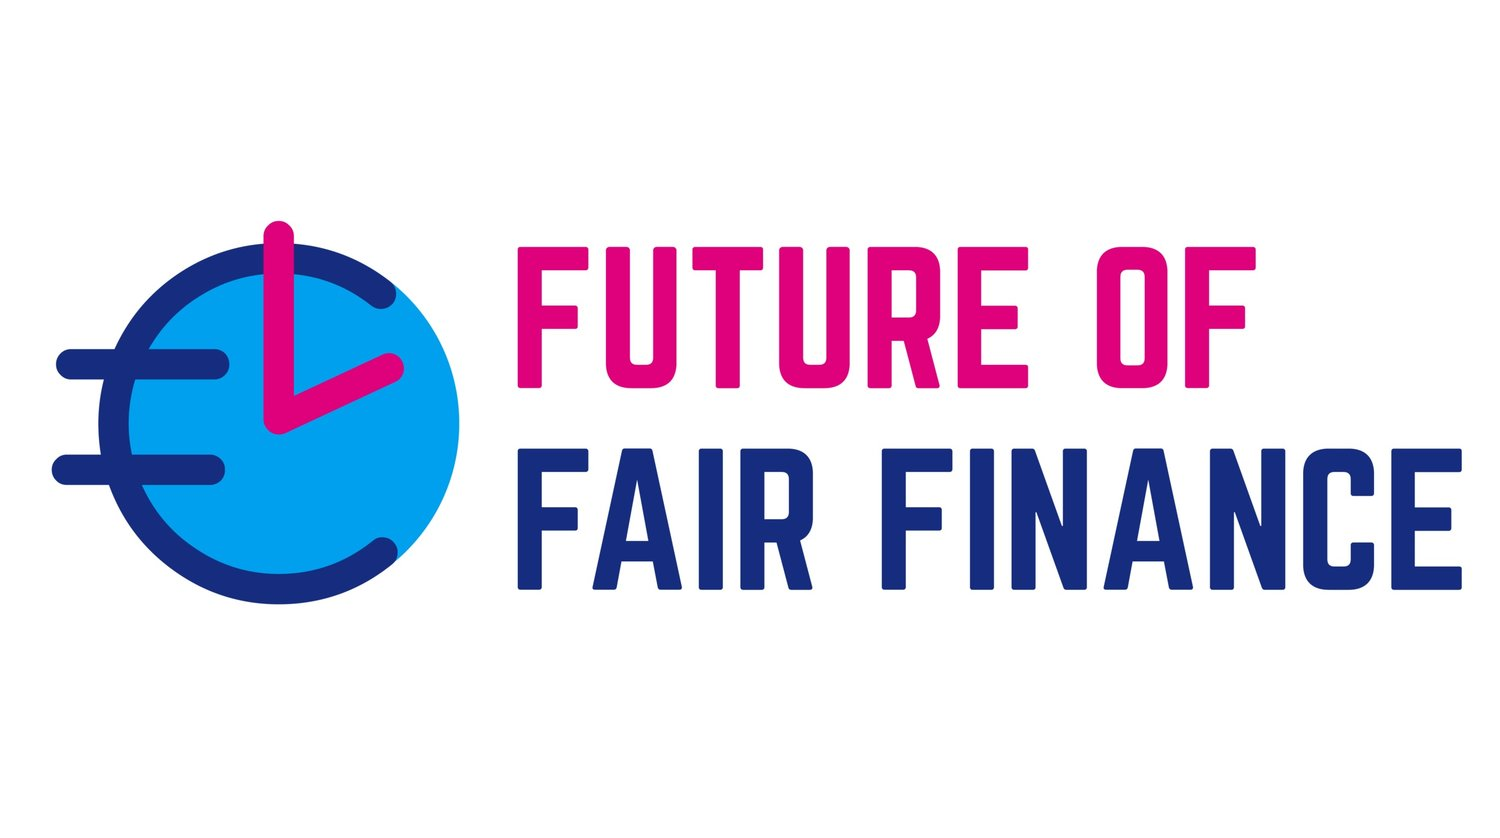 Future of Fair Finance